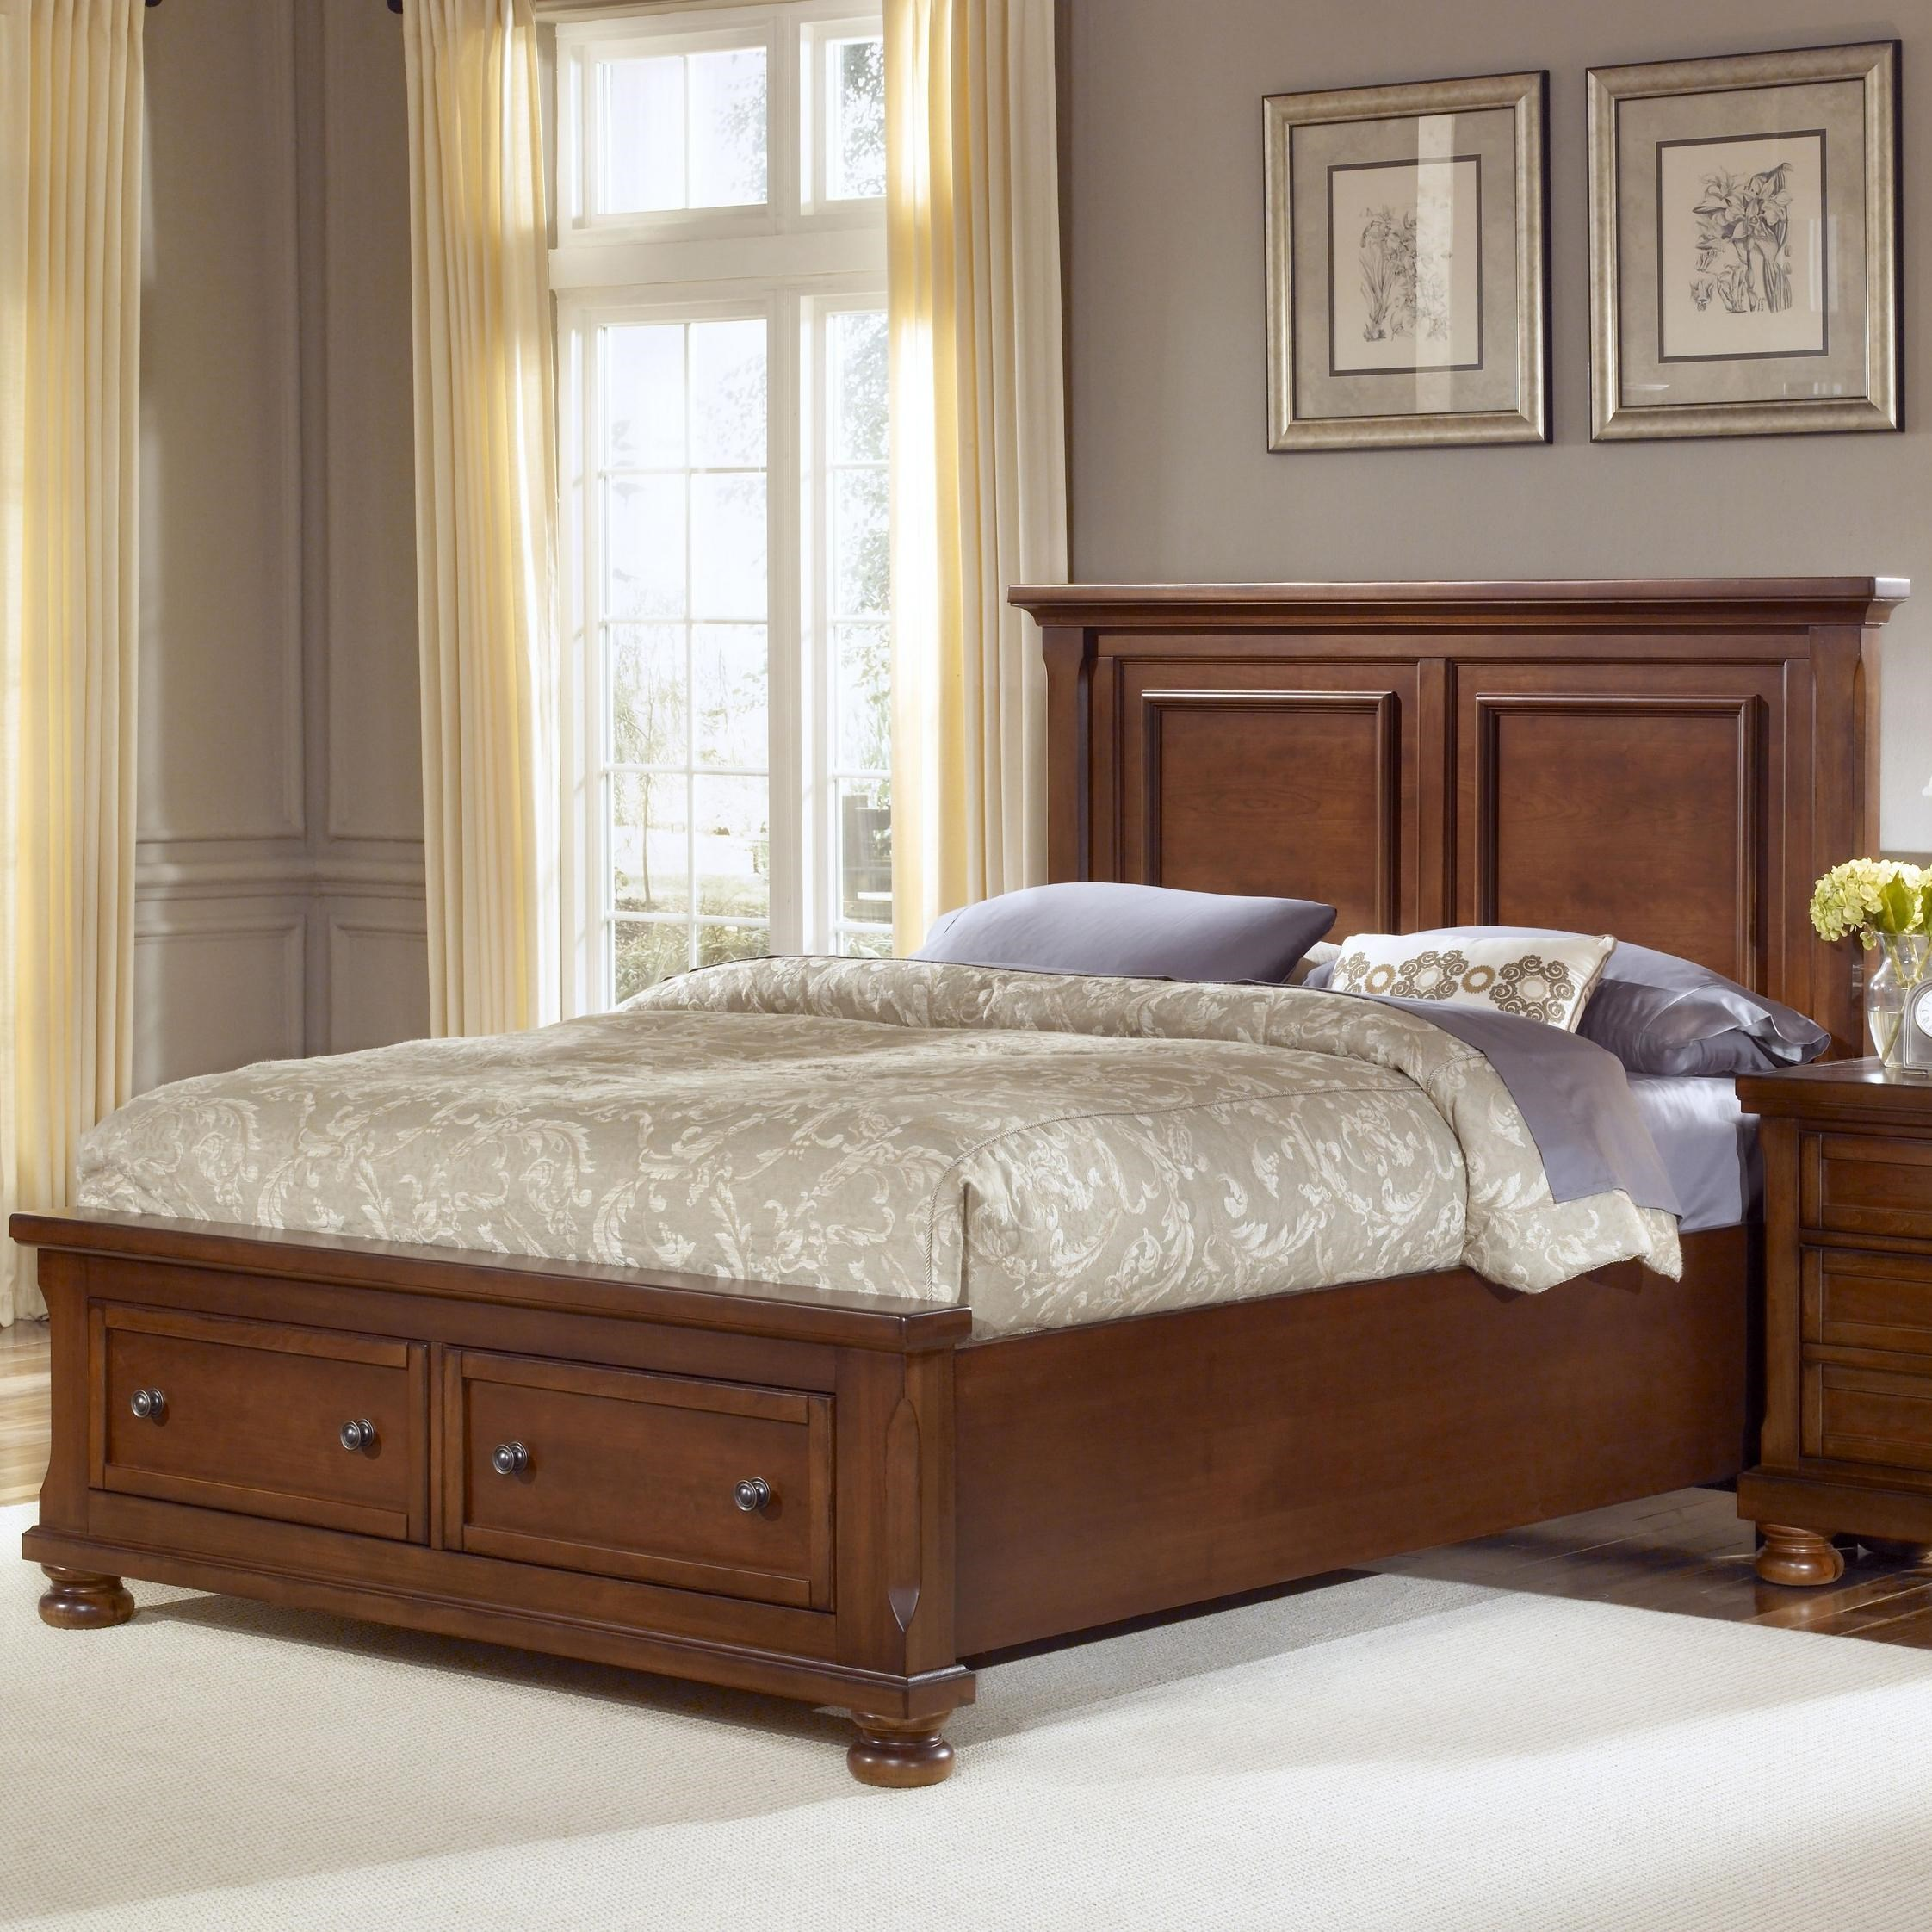 vaughan bassett reflections queen storage bed with mansion headboard rh aladdinhomestore com